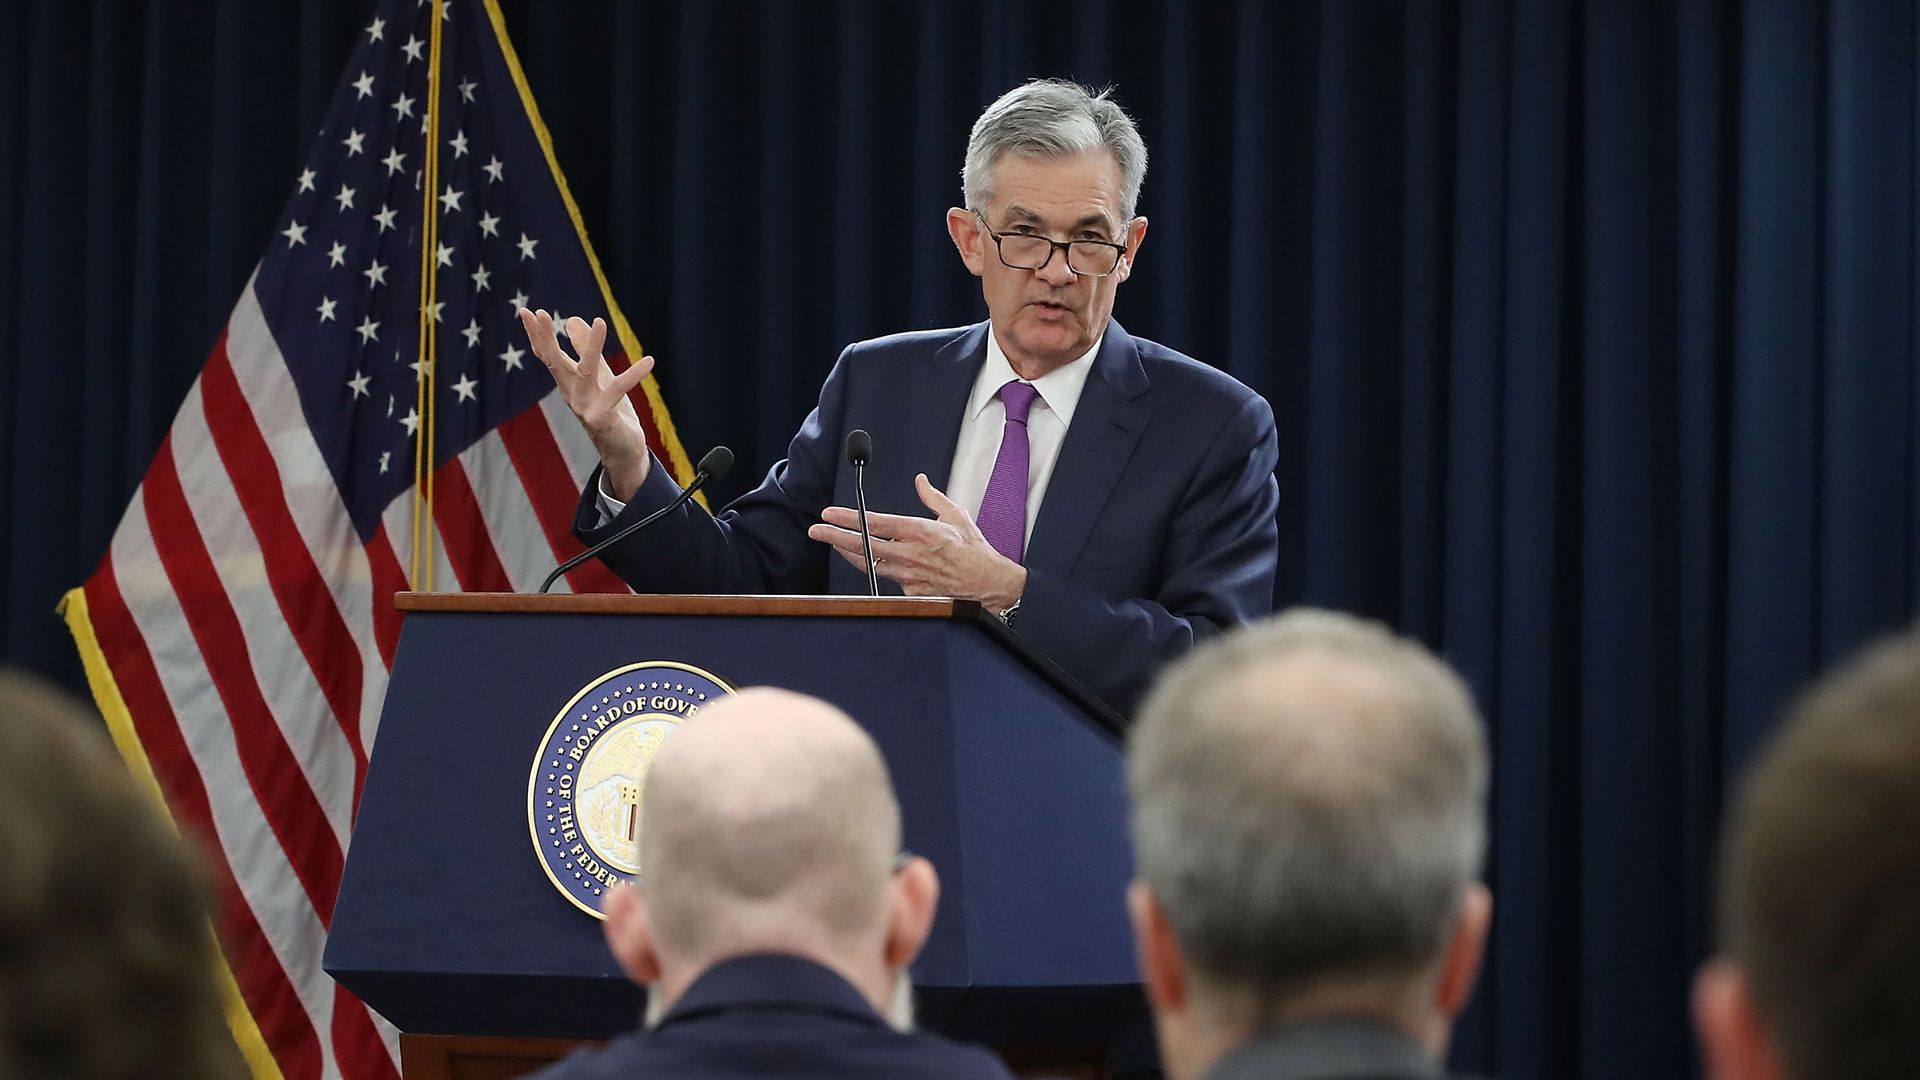 WASHINGTON, DC - SEPTEMBER 26: Federal Reserve Board Chairman Jerome Powell speaks during a news conference on September 26, 2018